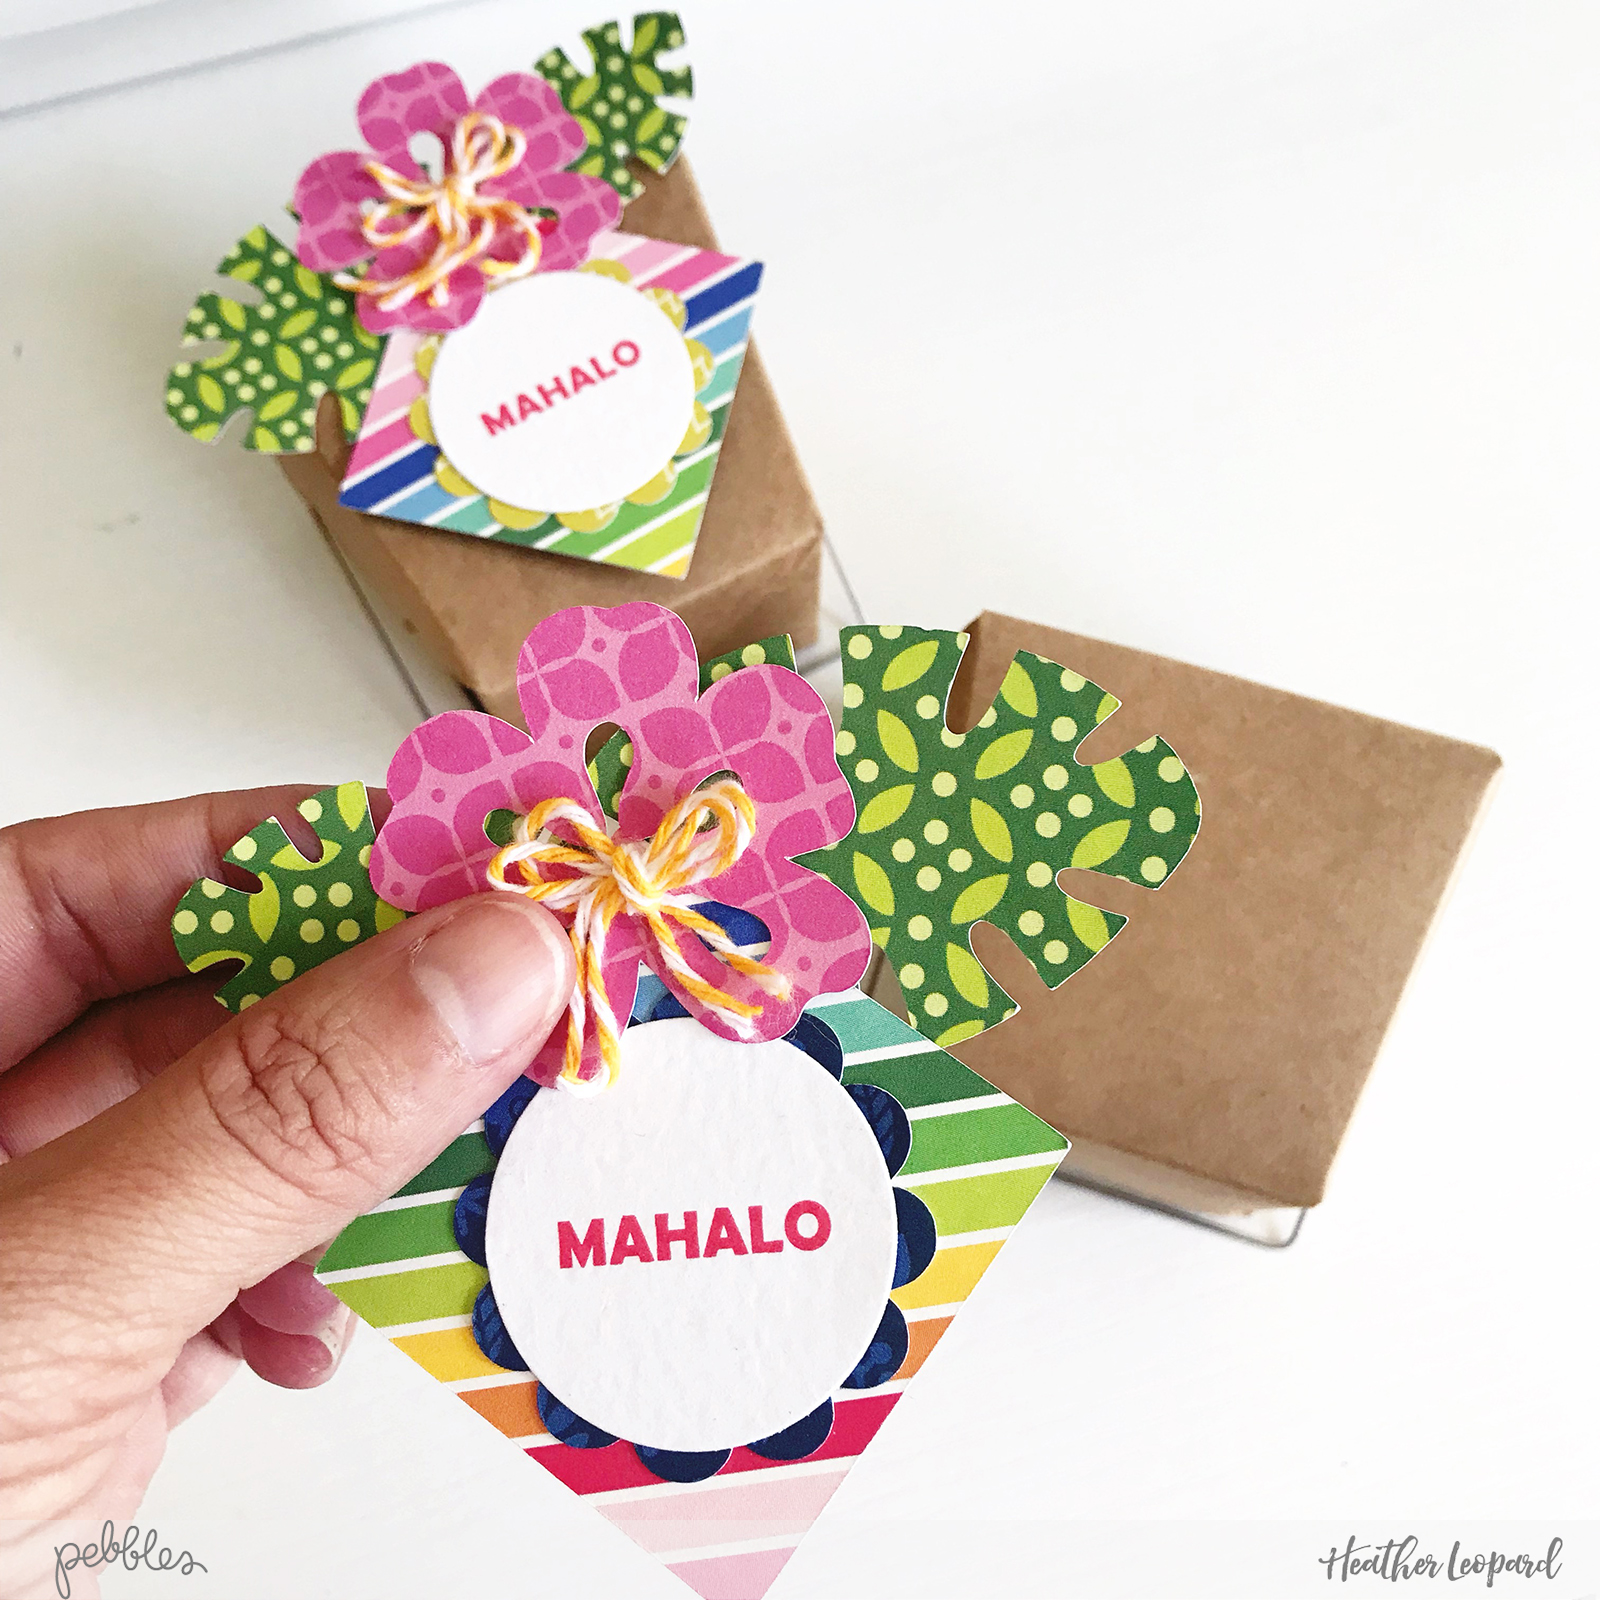 Aloha Luau Party by @HeatherLeopard @PebblesInc #MyBrightLife #aloha #madewithpebbles #hawaiian #luau #party #pineapple #luauparty #partydecor #giftbag #goodybag